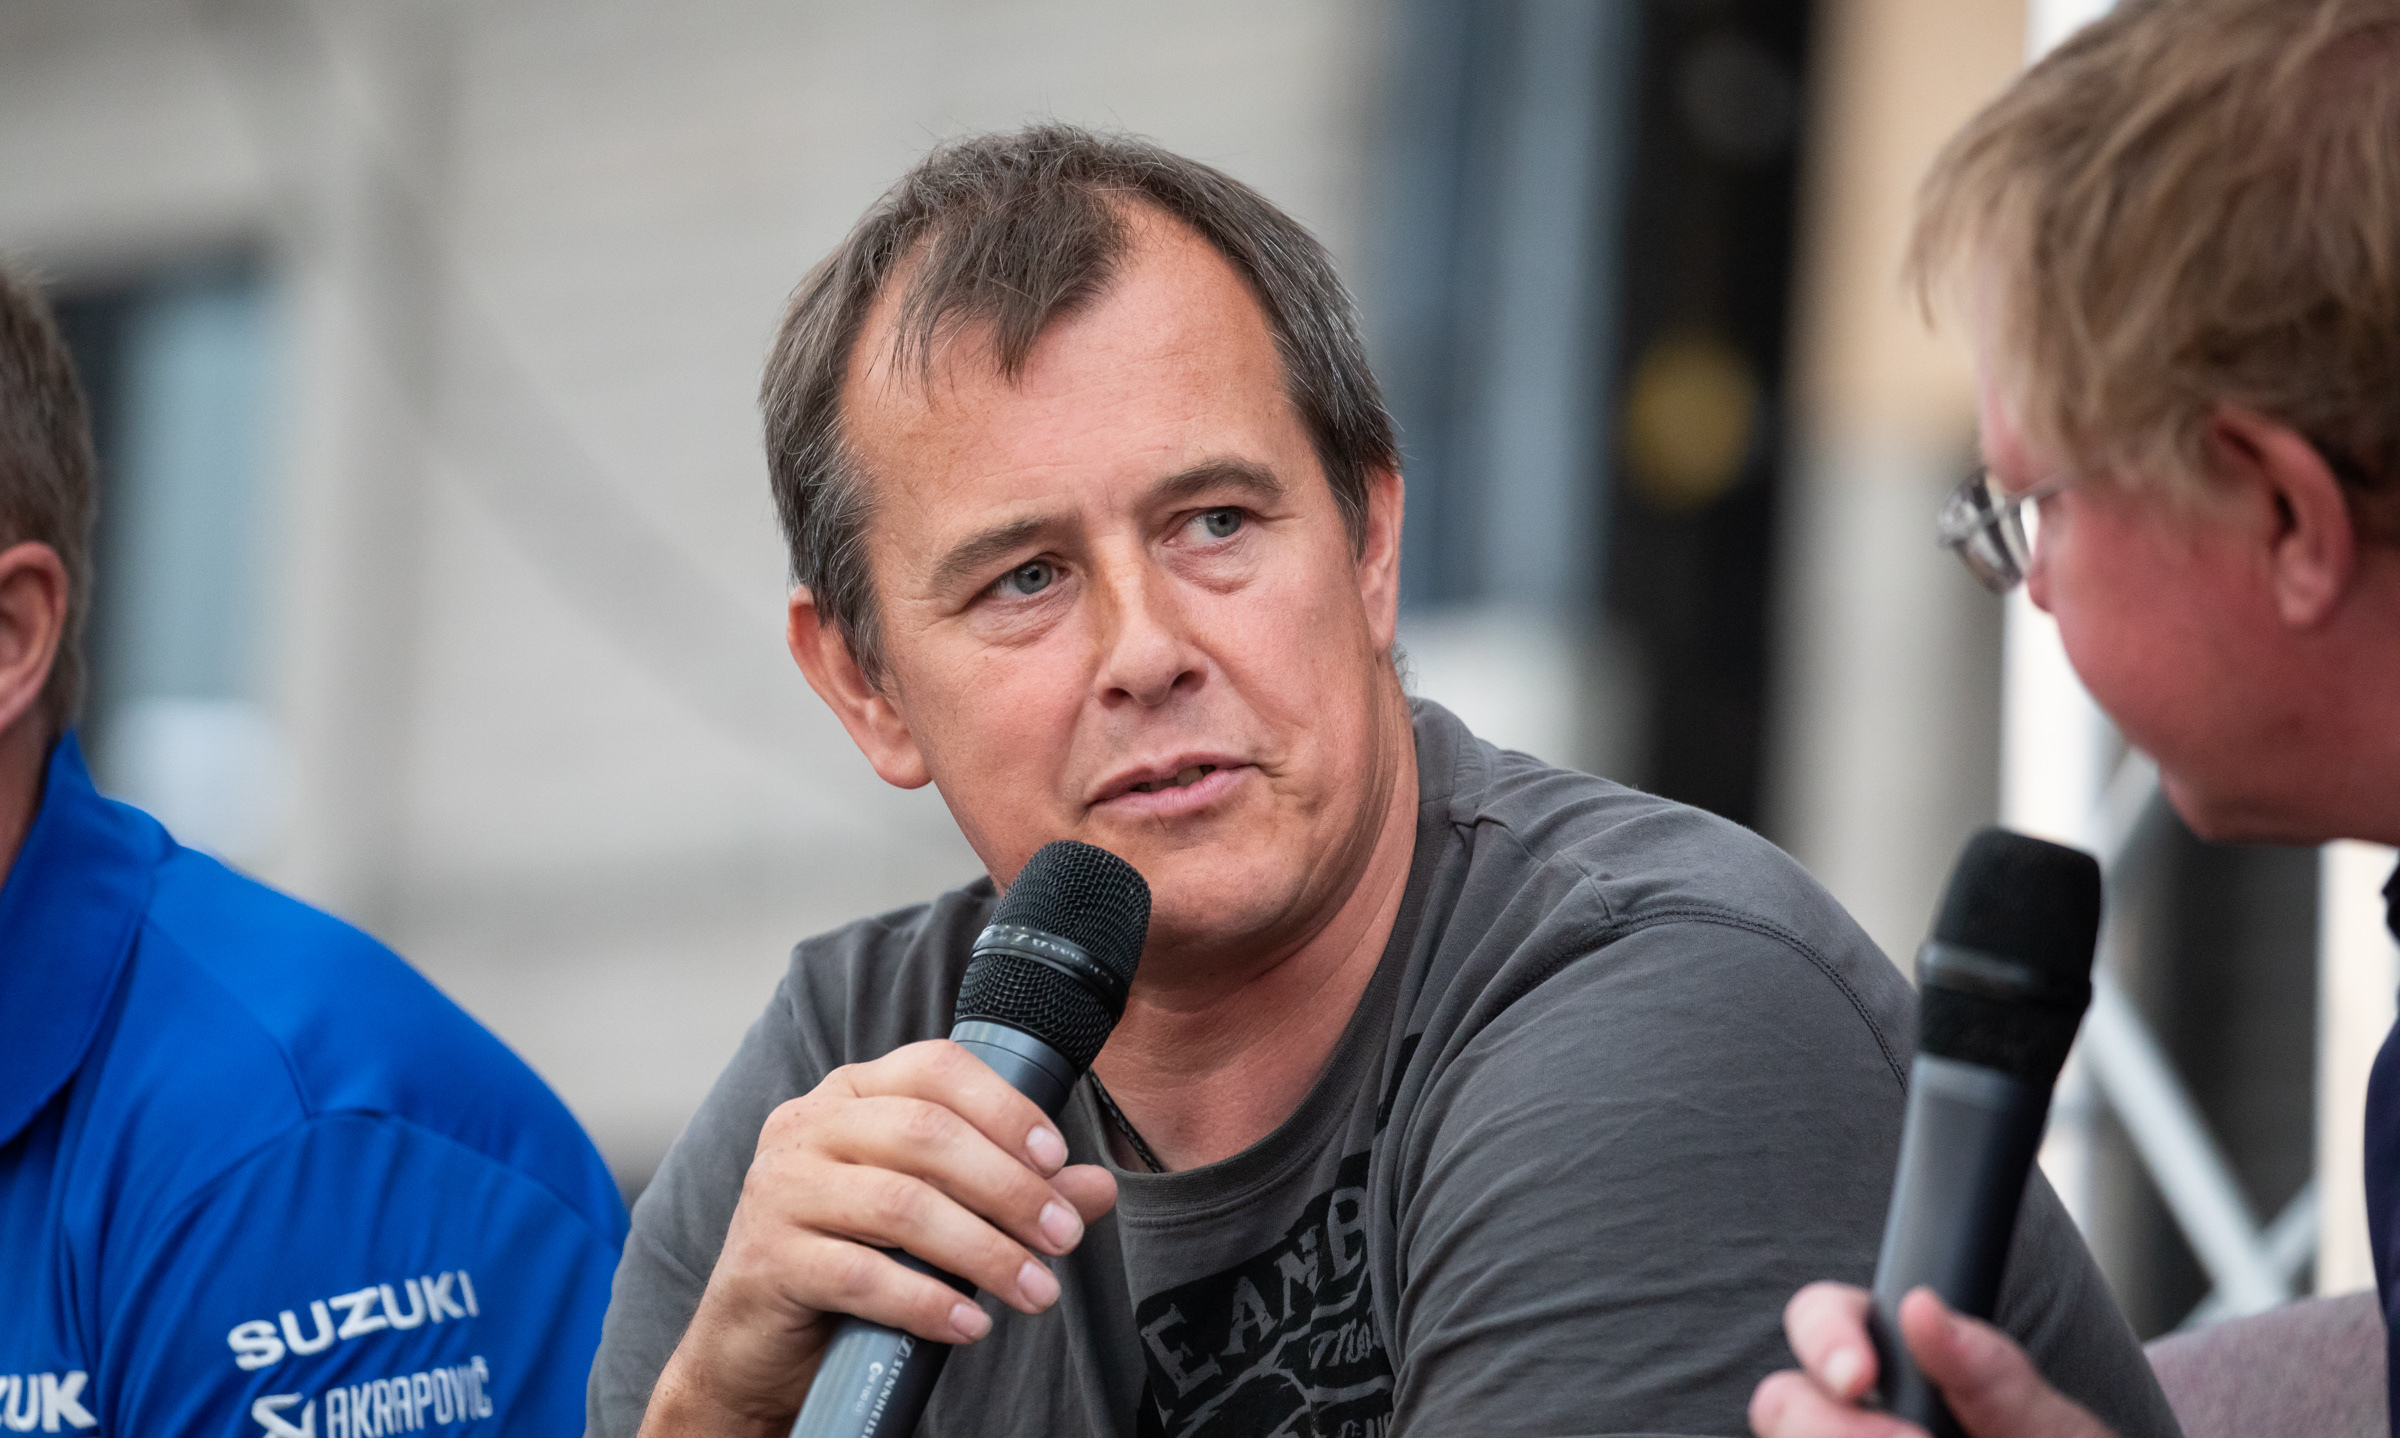 Motorcycle racer John McGuinness is coming to Hereford